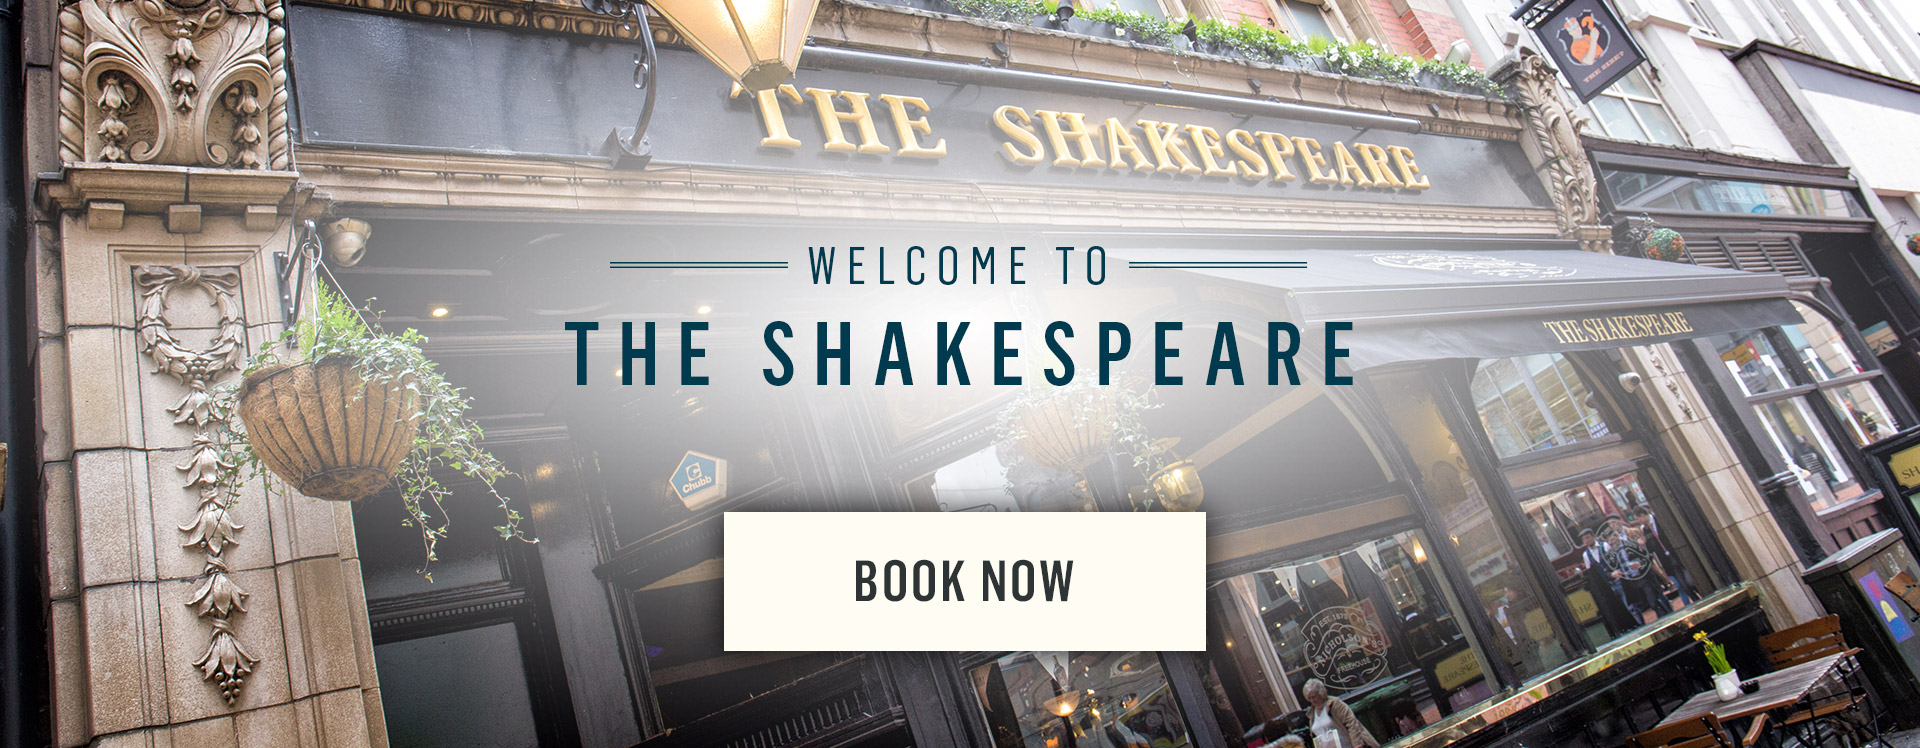 Welcome to The Shakespeare - Book Now